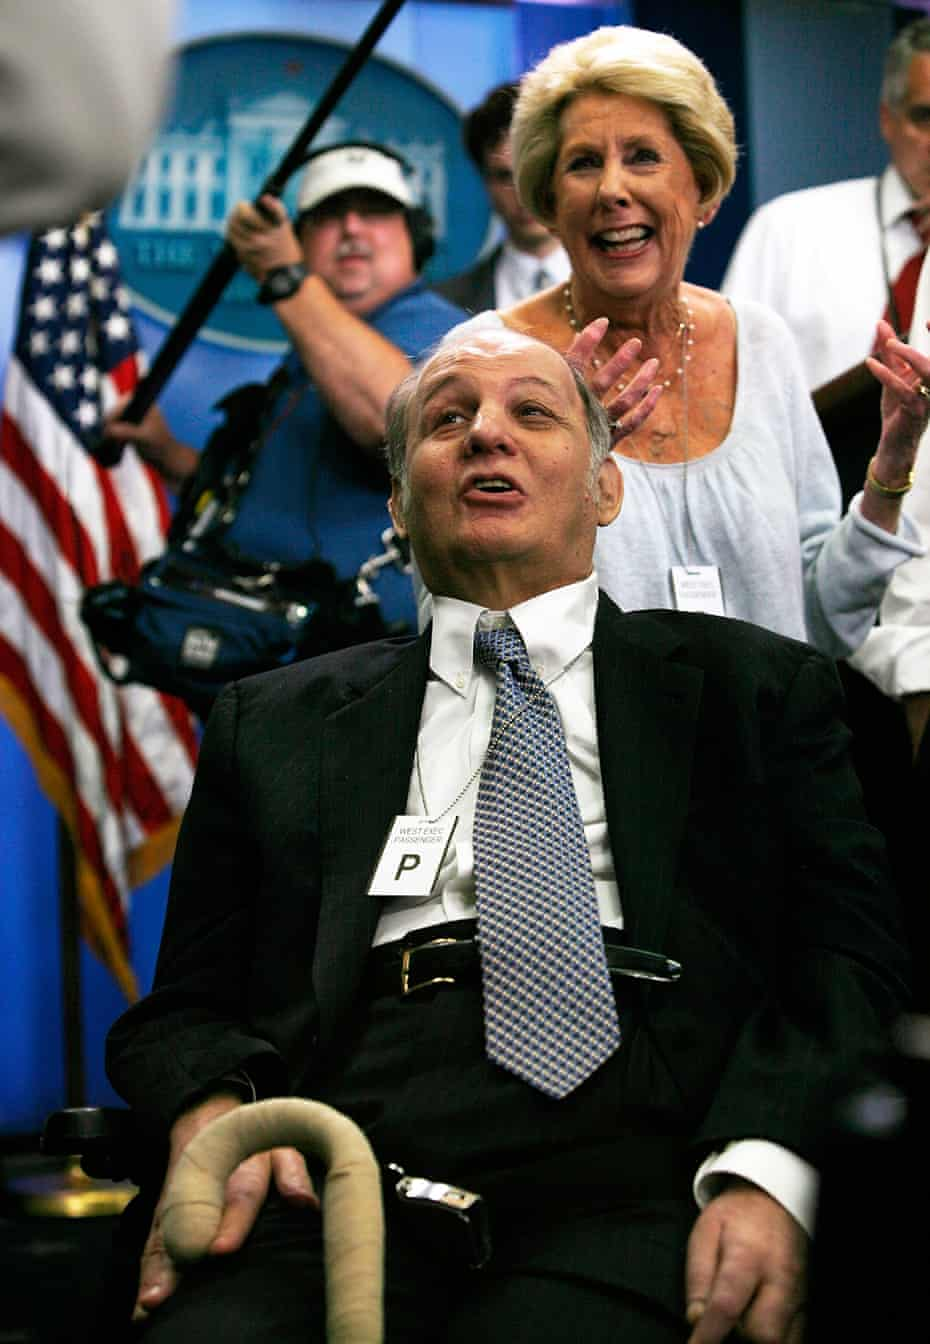 James Brady, former White House press secretary, shown with his wife Sarah on 16 June 2009, became a gun control activist after the assassination attempt.